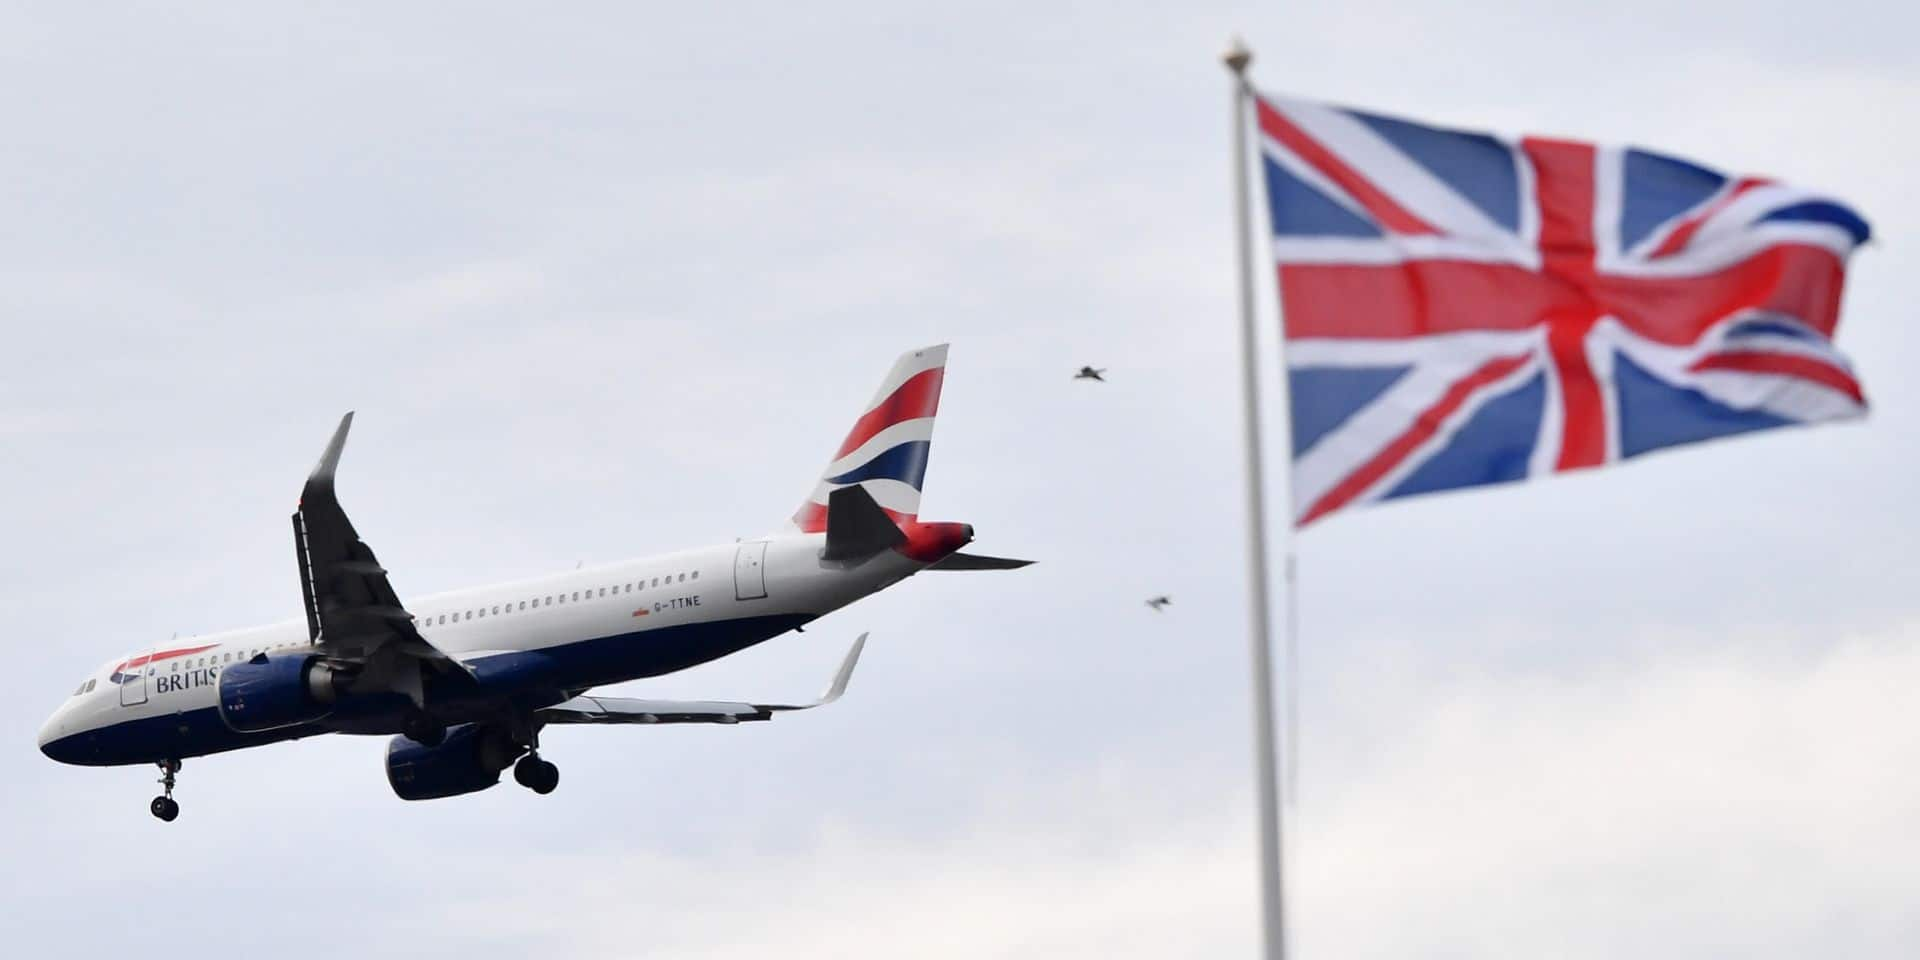 La justice s'oppose à l'agrandissement de l'aéroport d'Heathrow à Londres